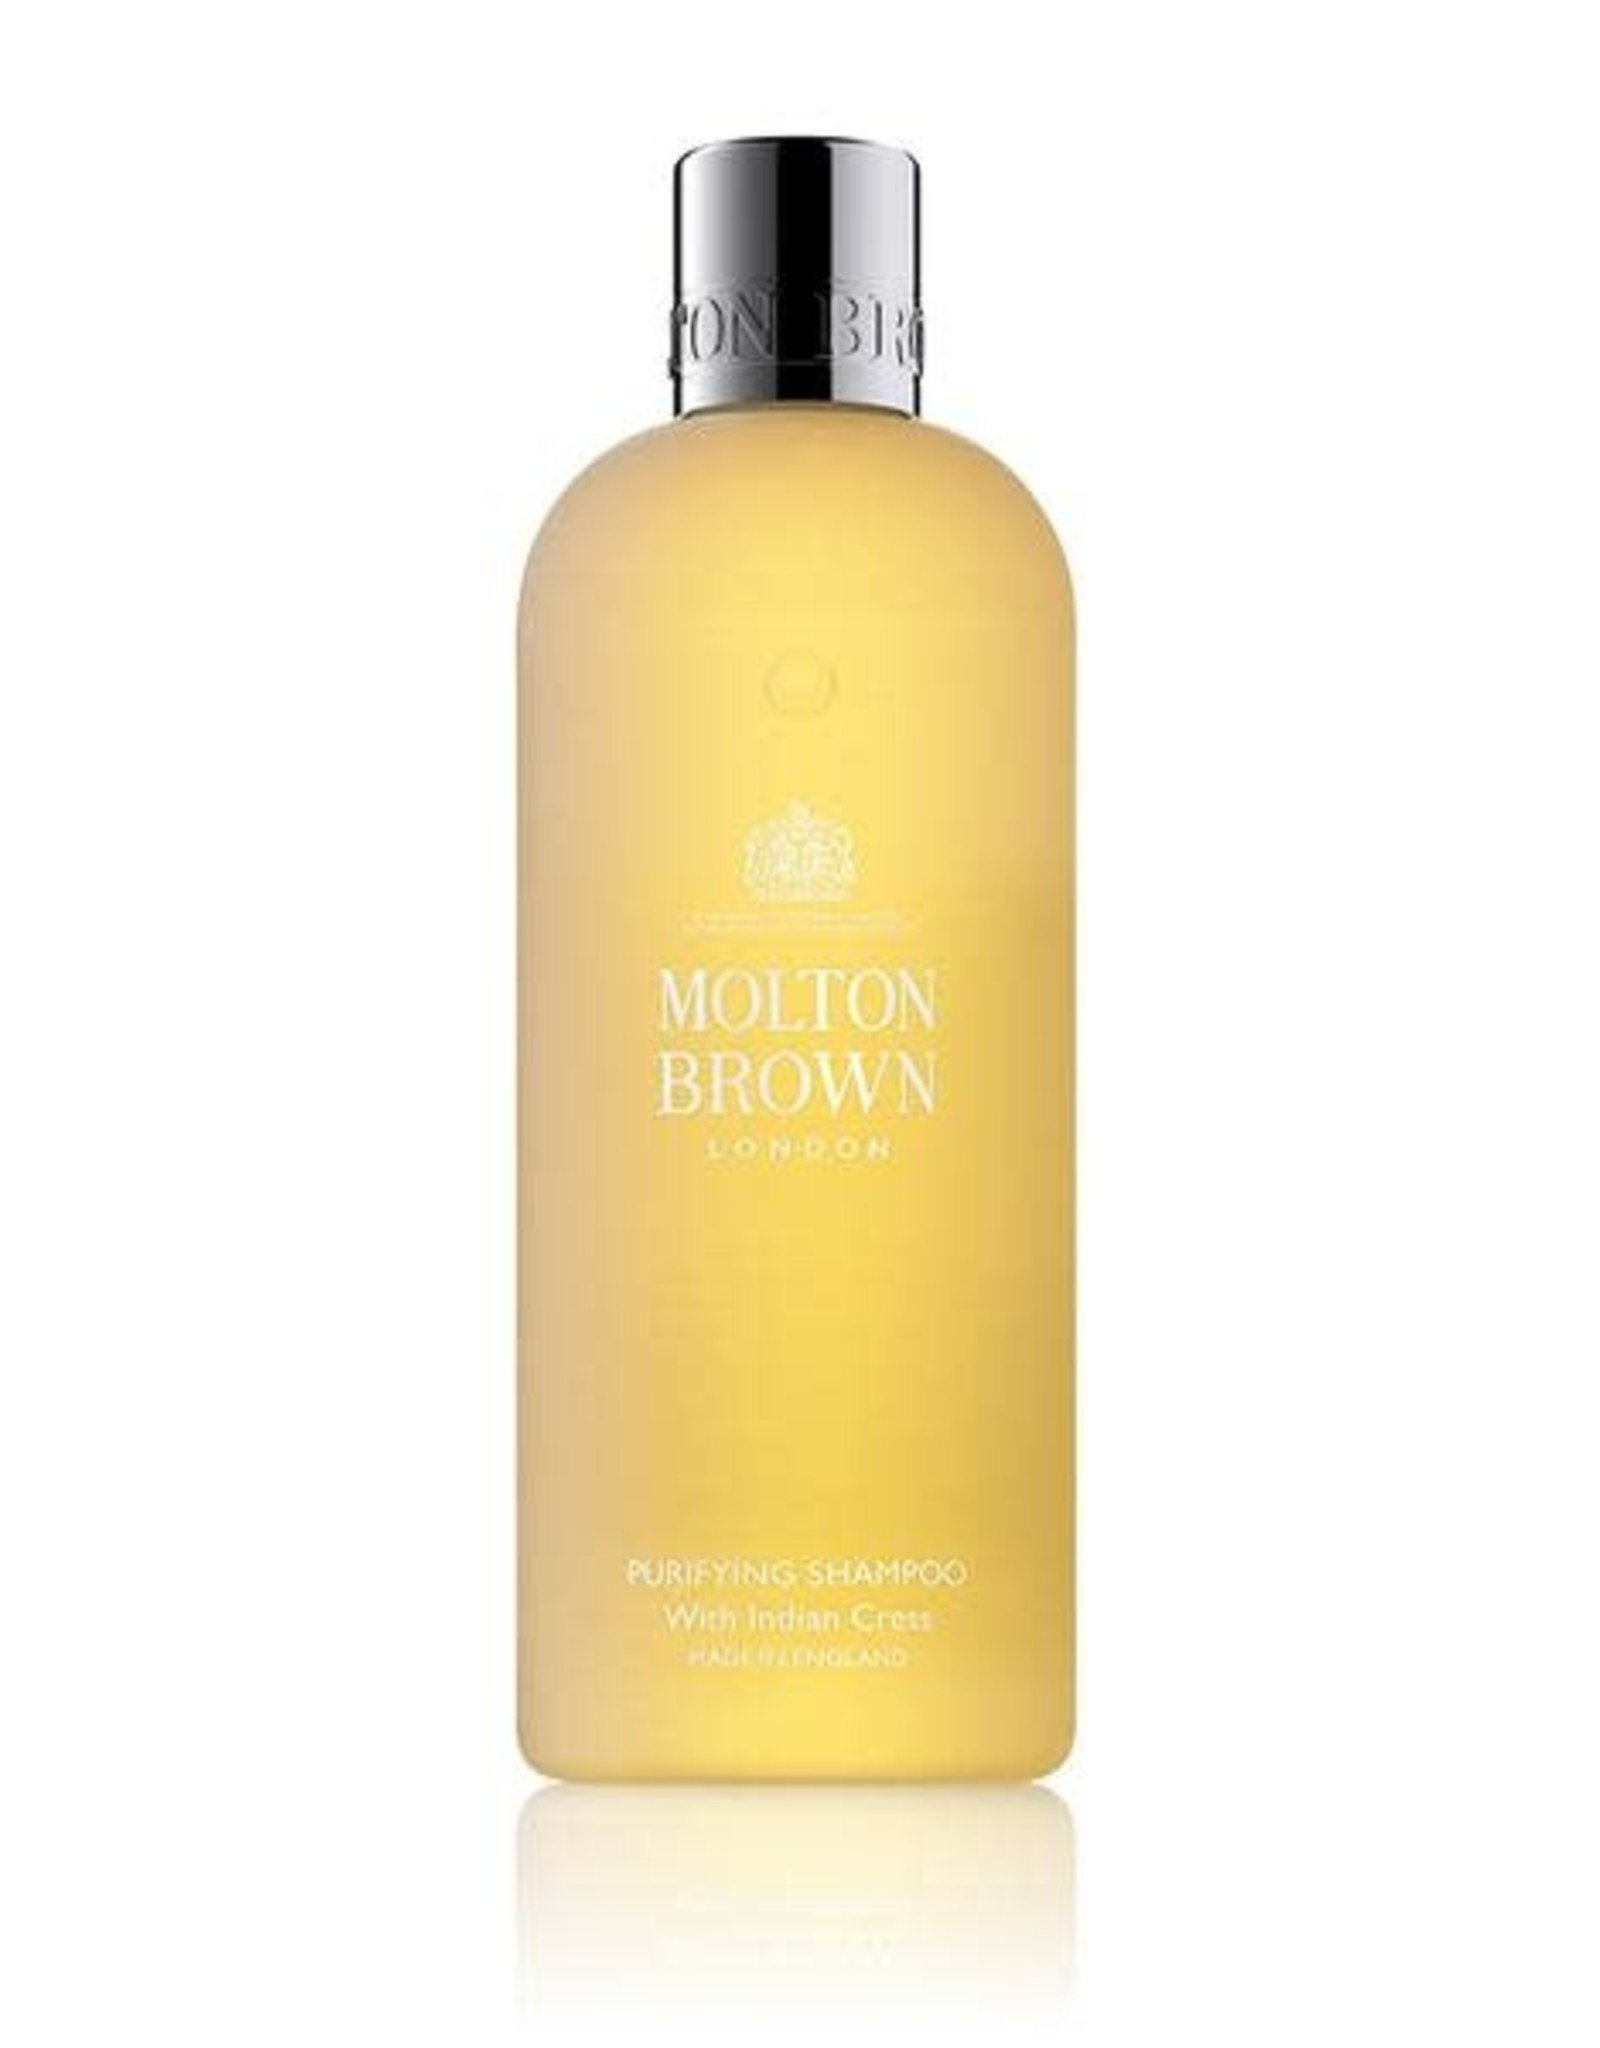 Gifts Gentle Purifying Shampoo with Indian Cress